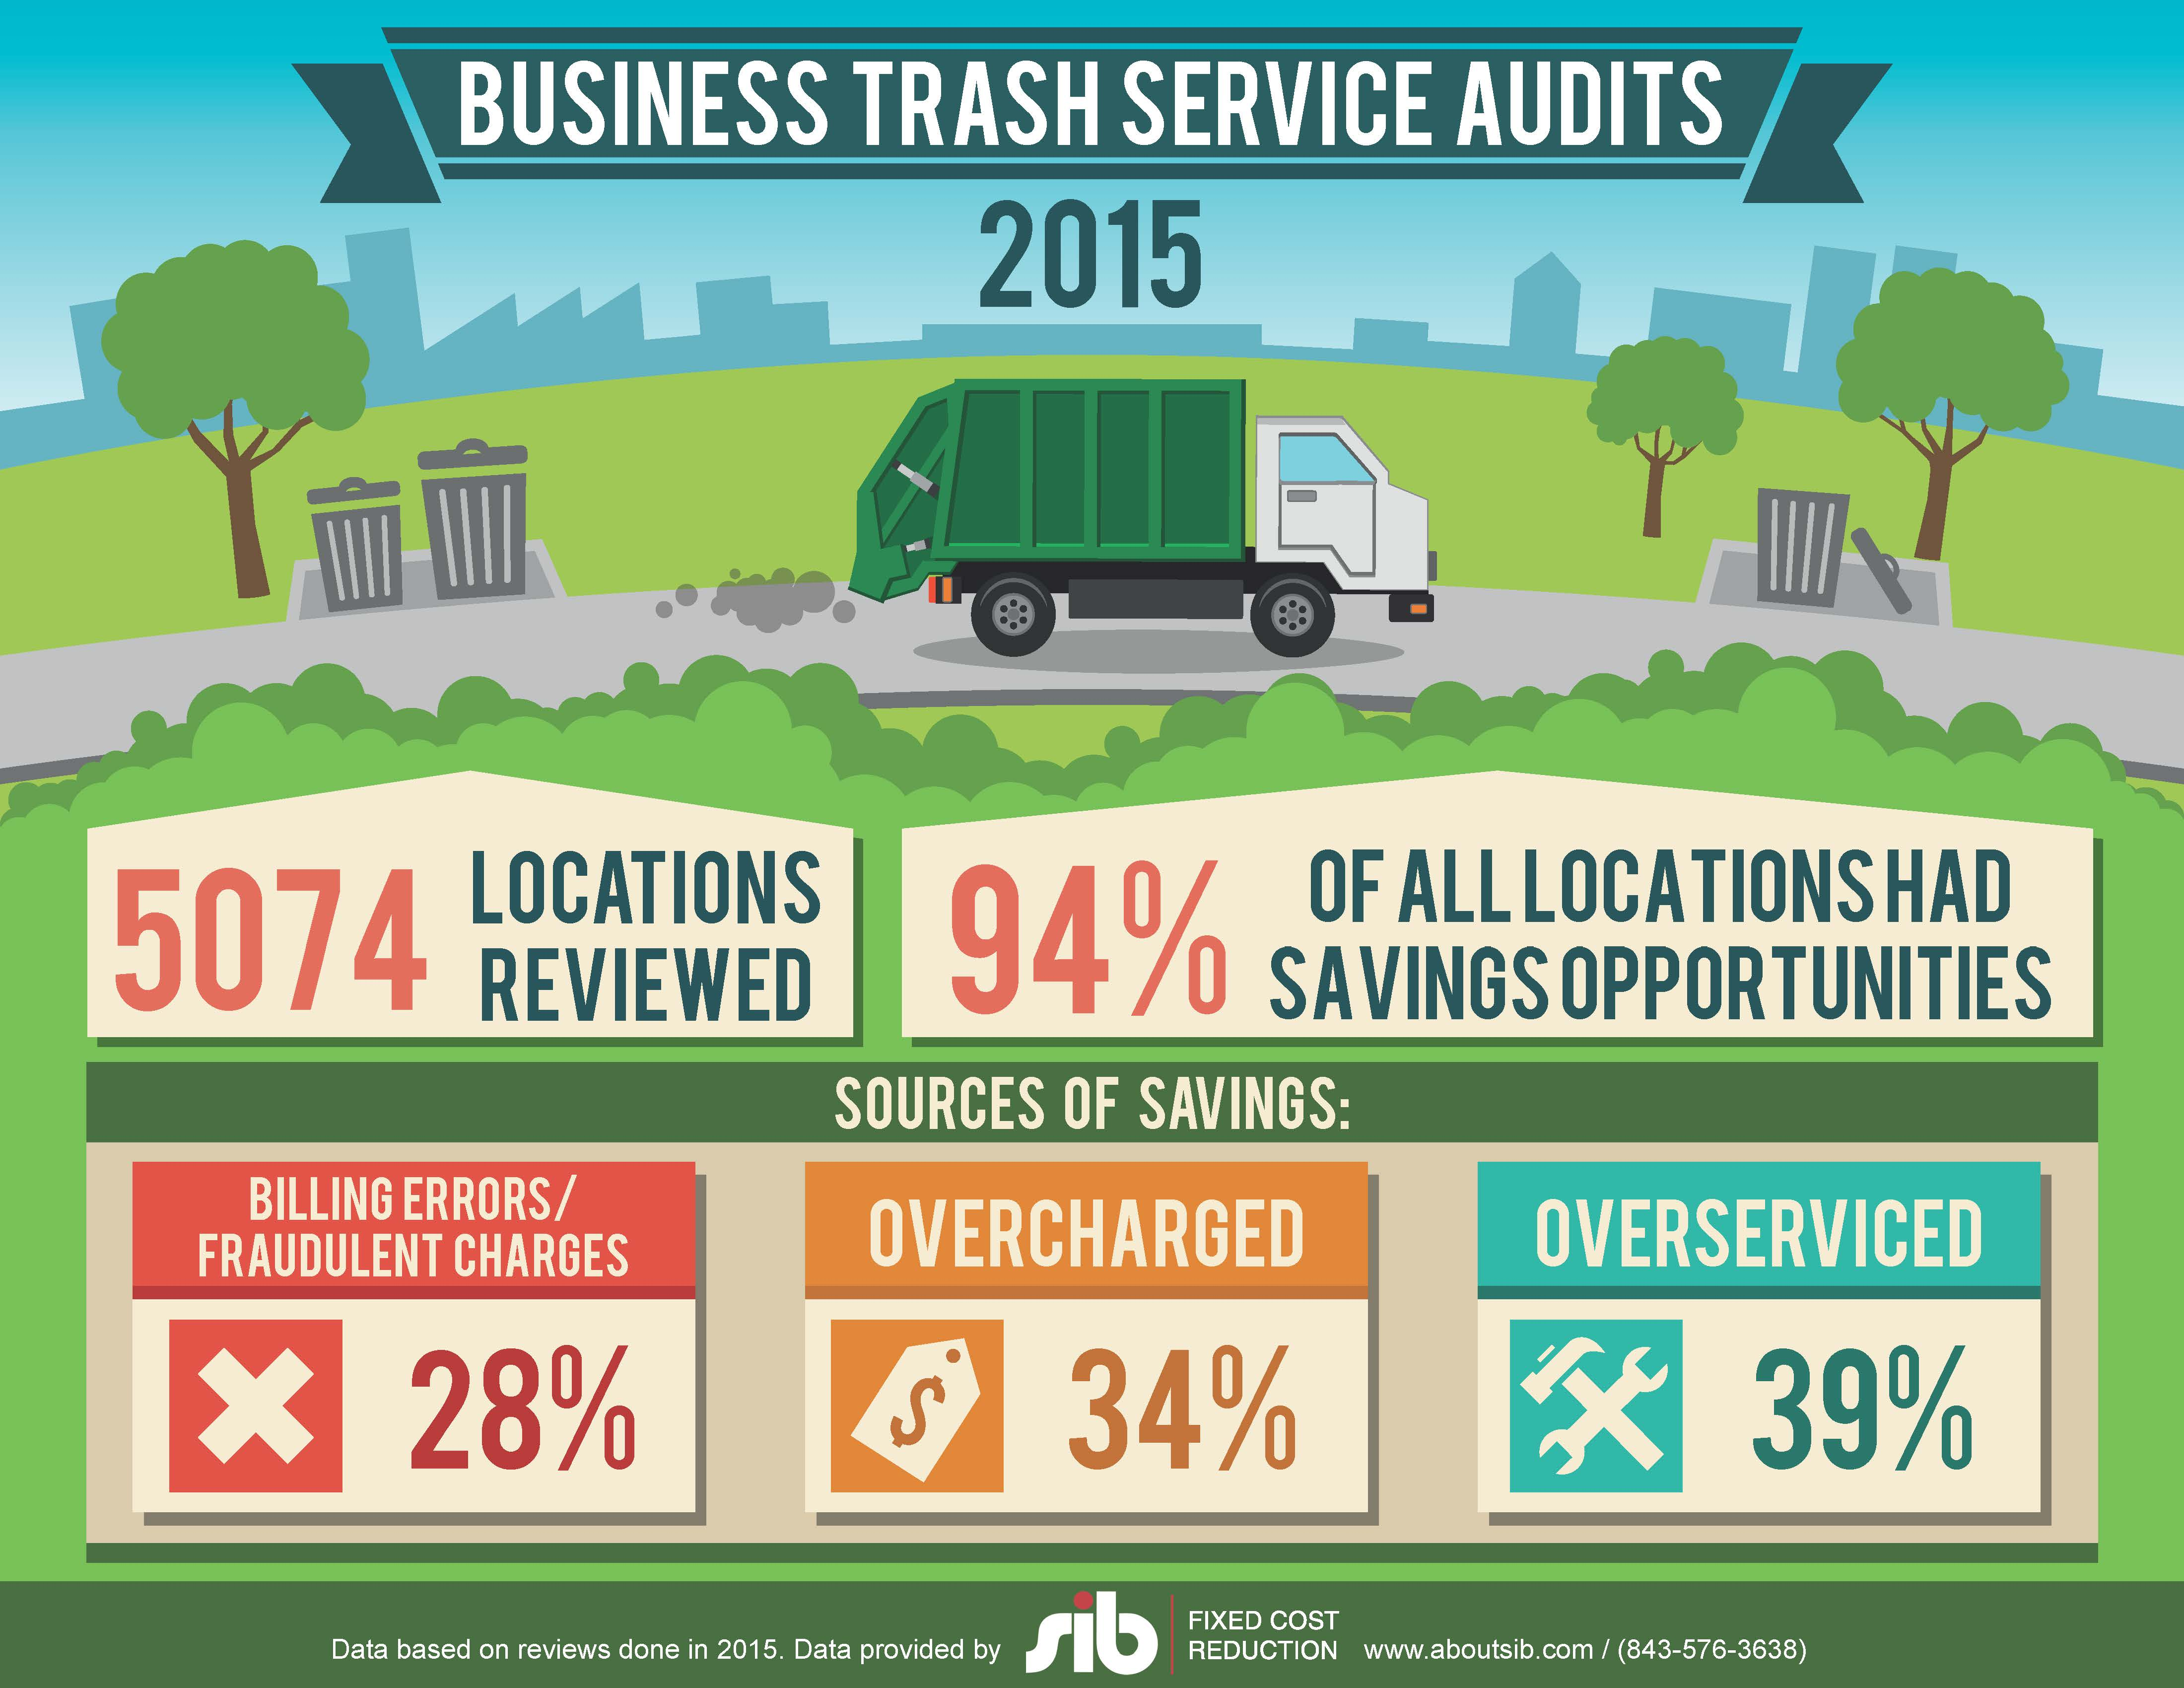 SIB_Infographic_TrashServiceAudits2015_2016-05-19